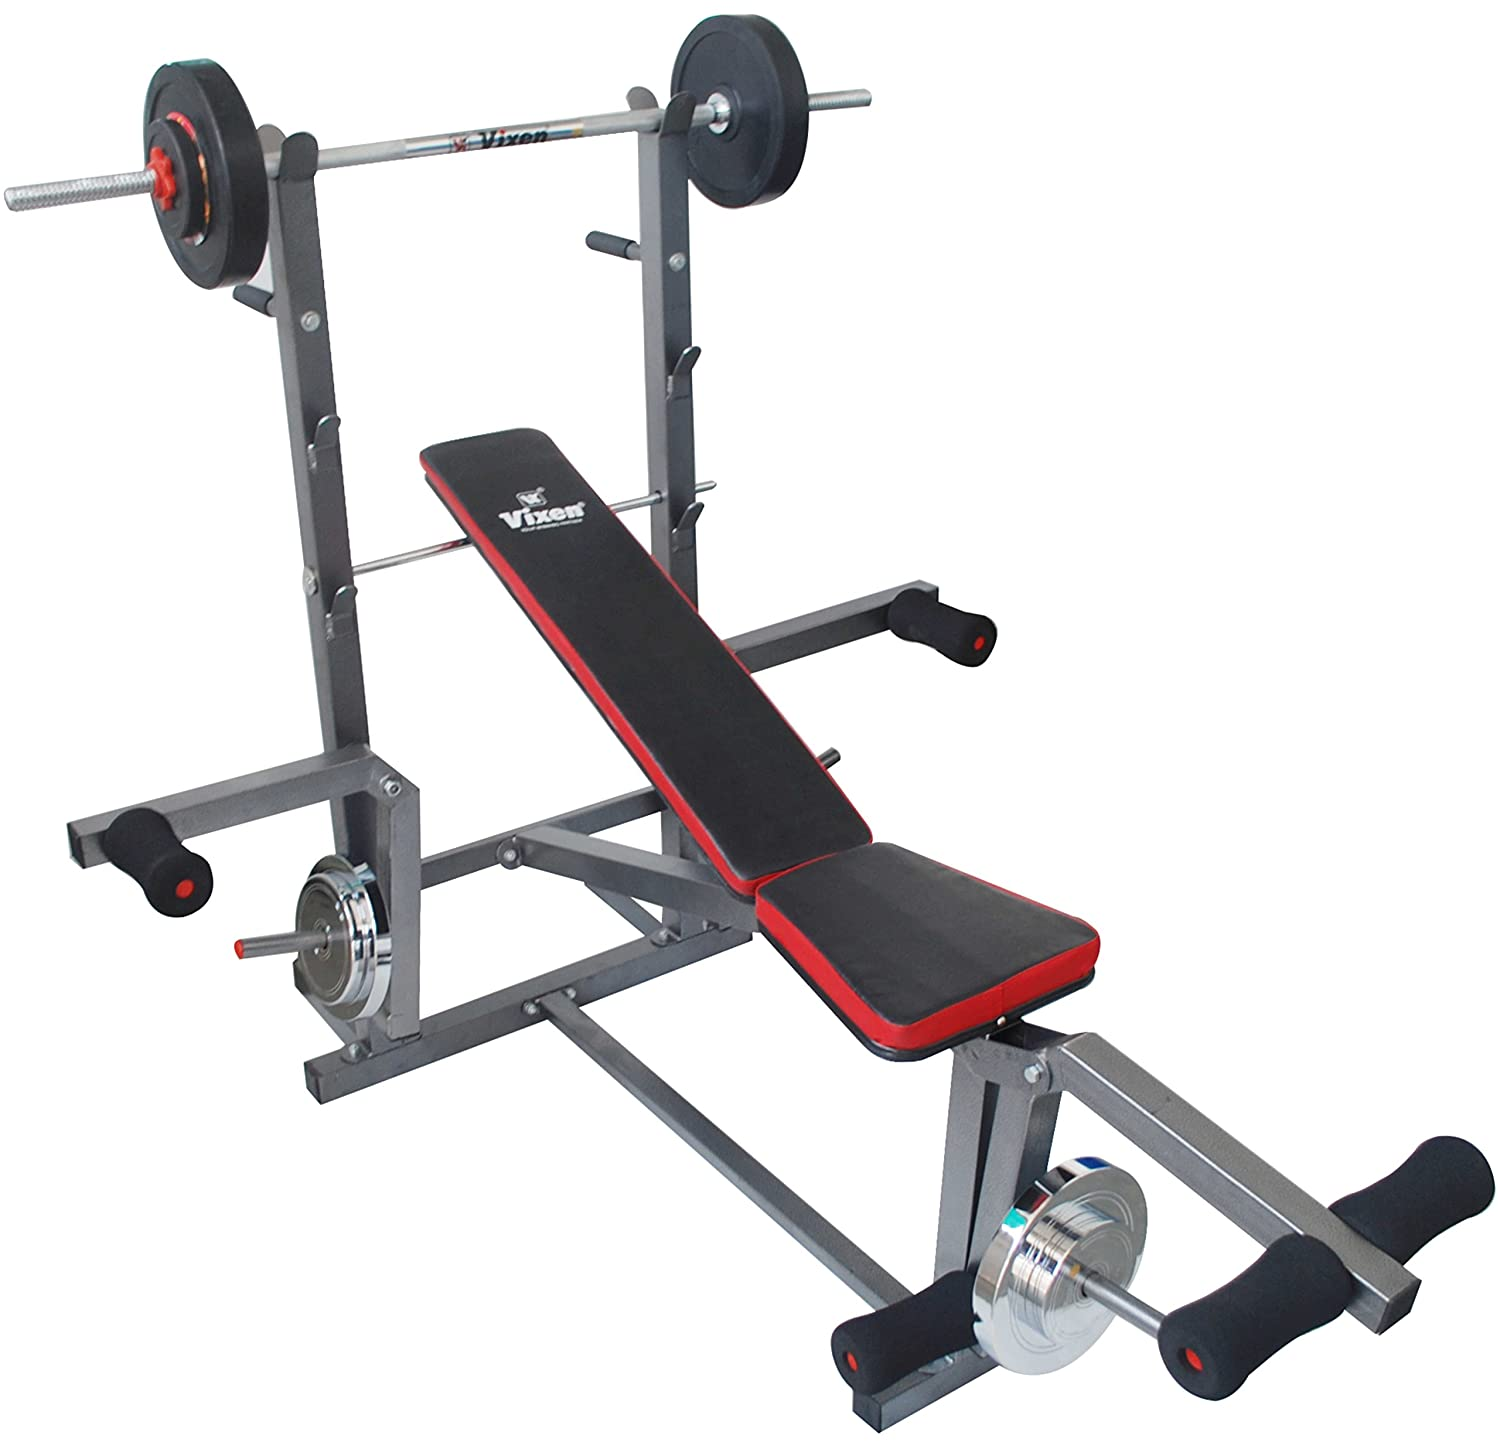 bench bar weight uk sets best with catches extension leg lifting